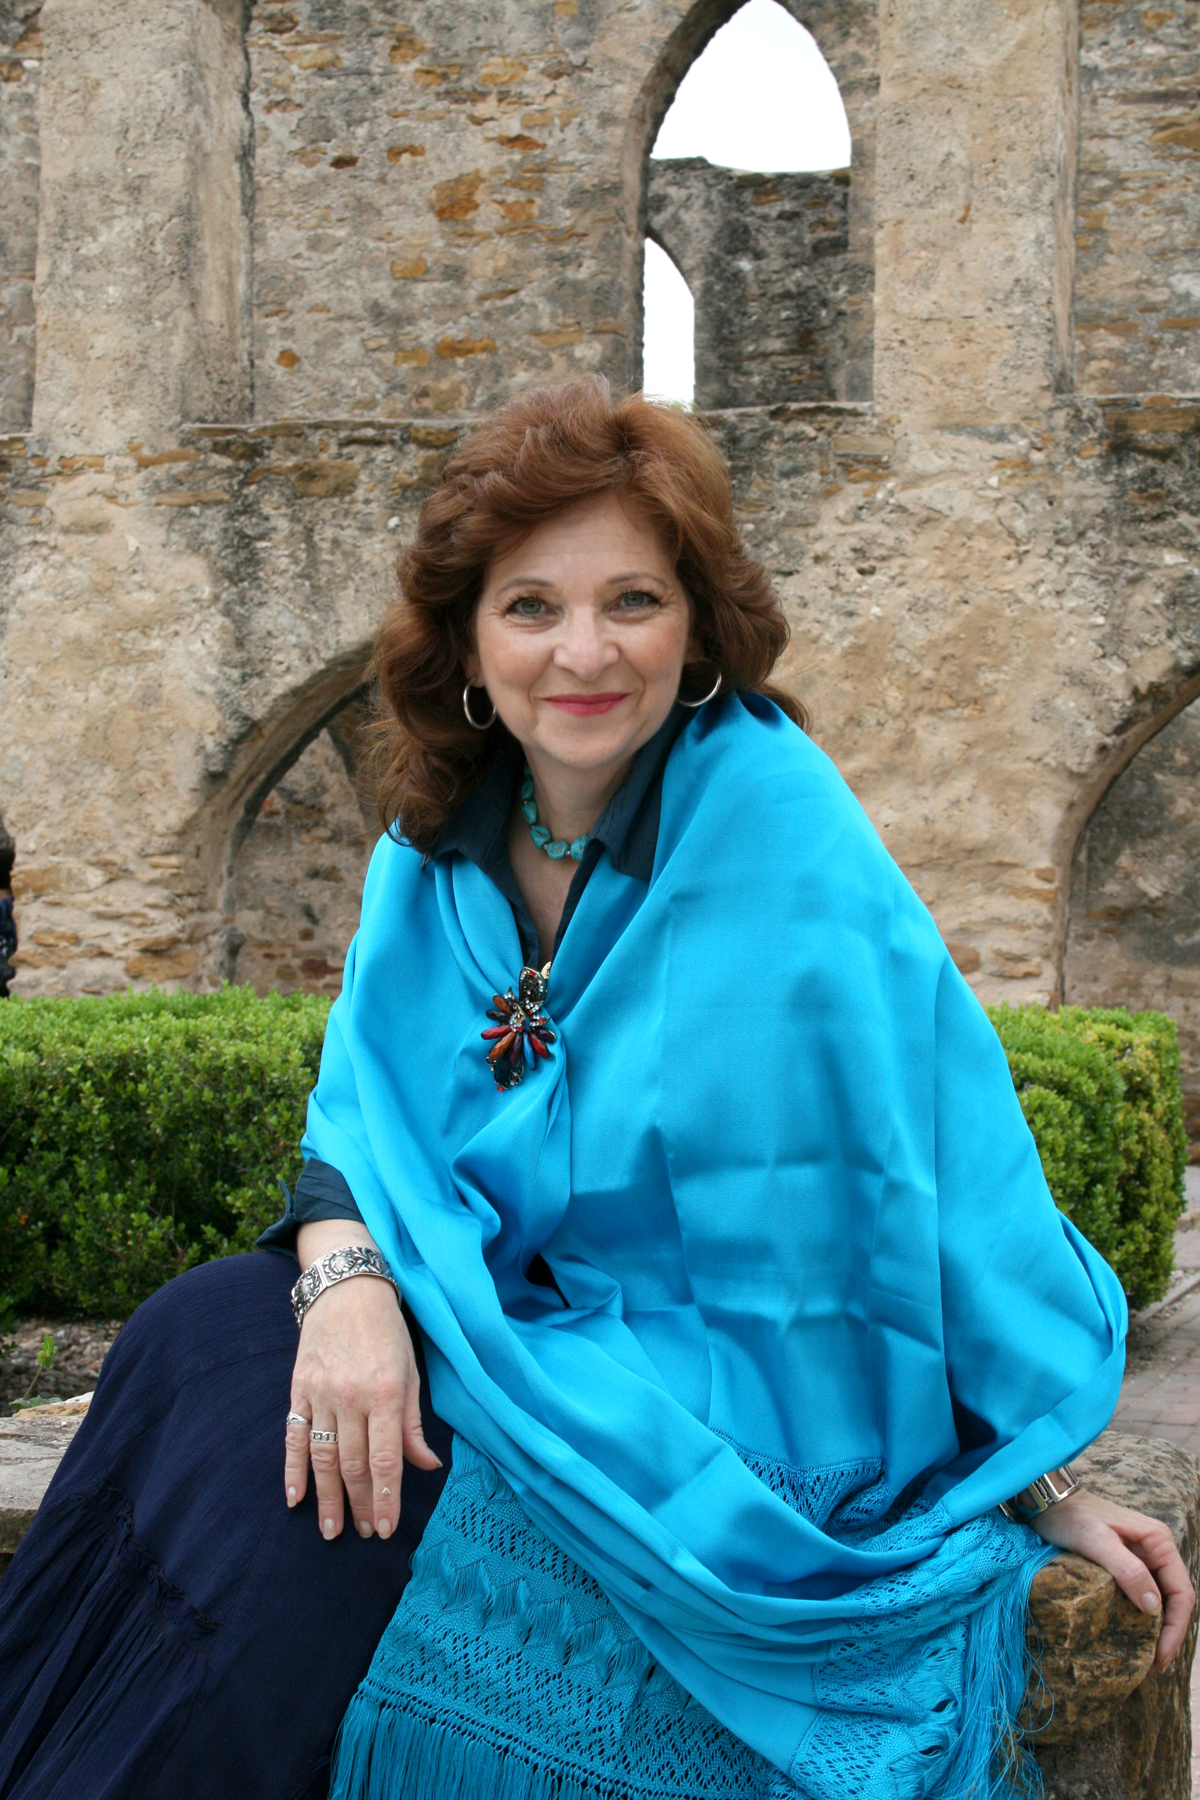 Dr. Carmen Tafolla, San Antonio's Inaugural Poet Laureate, is an internationally published poet and writer and a native of the city's West Side barrios. Courtesy photo.